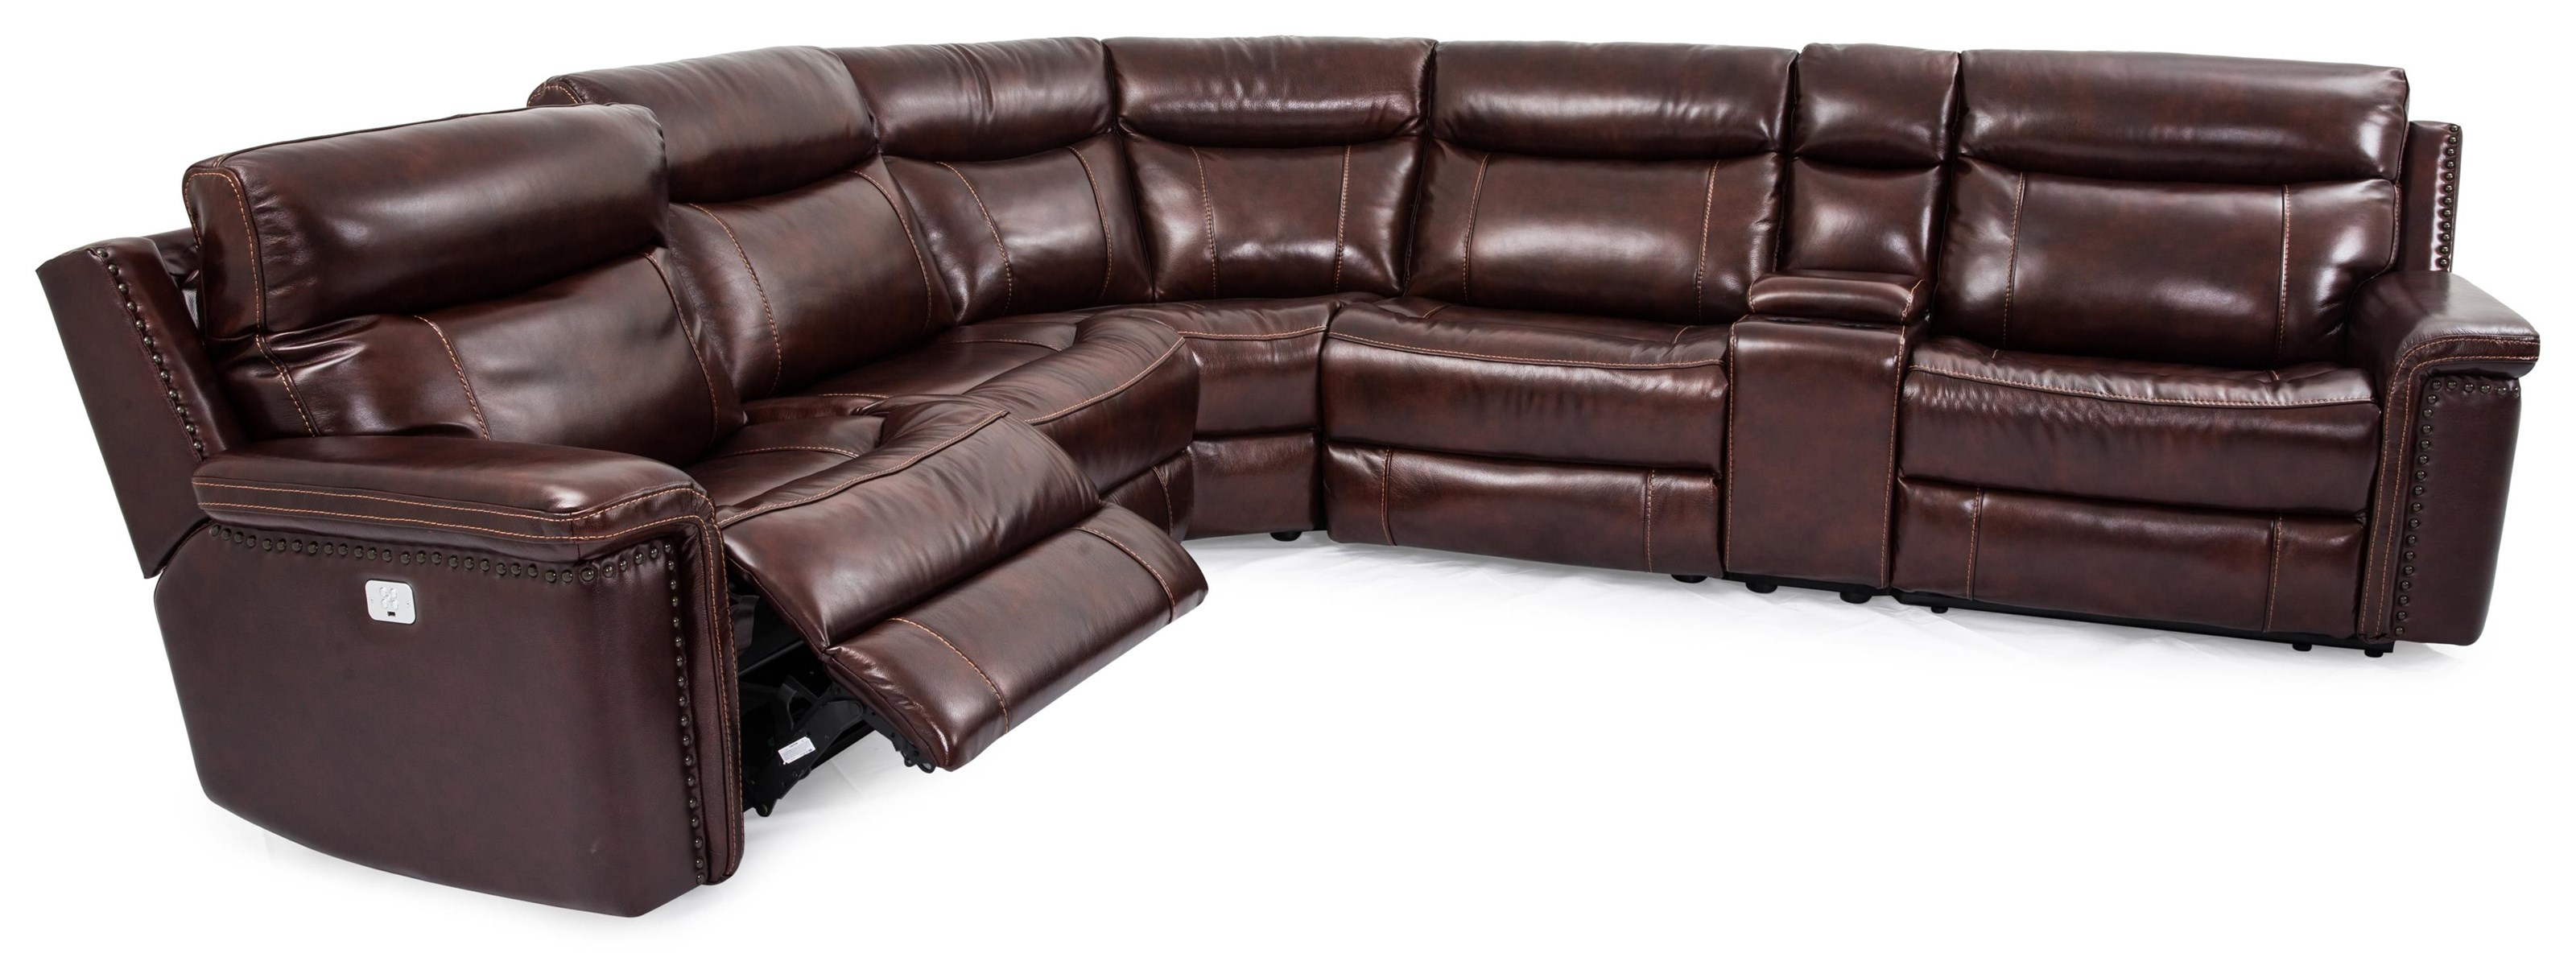 Baxter 6-Piece Leather-Match* PWR Sectional